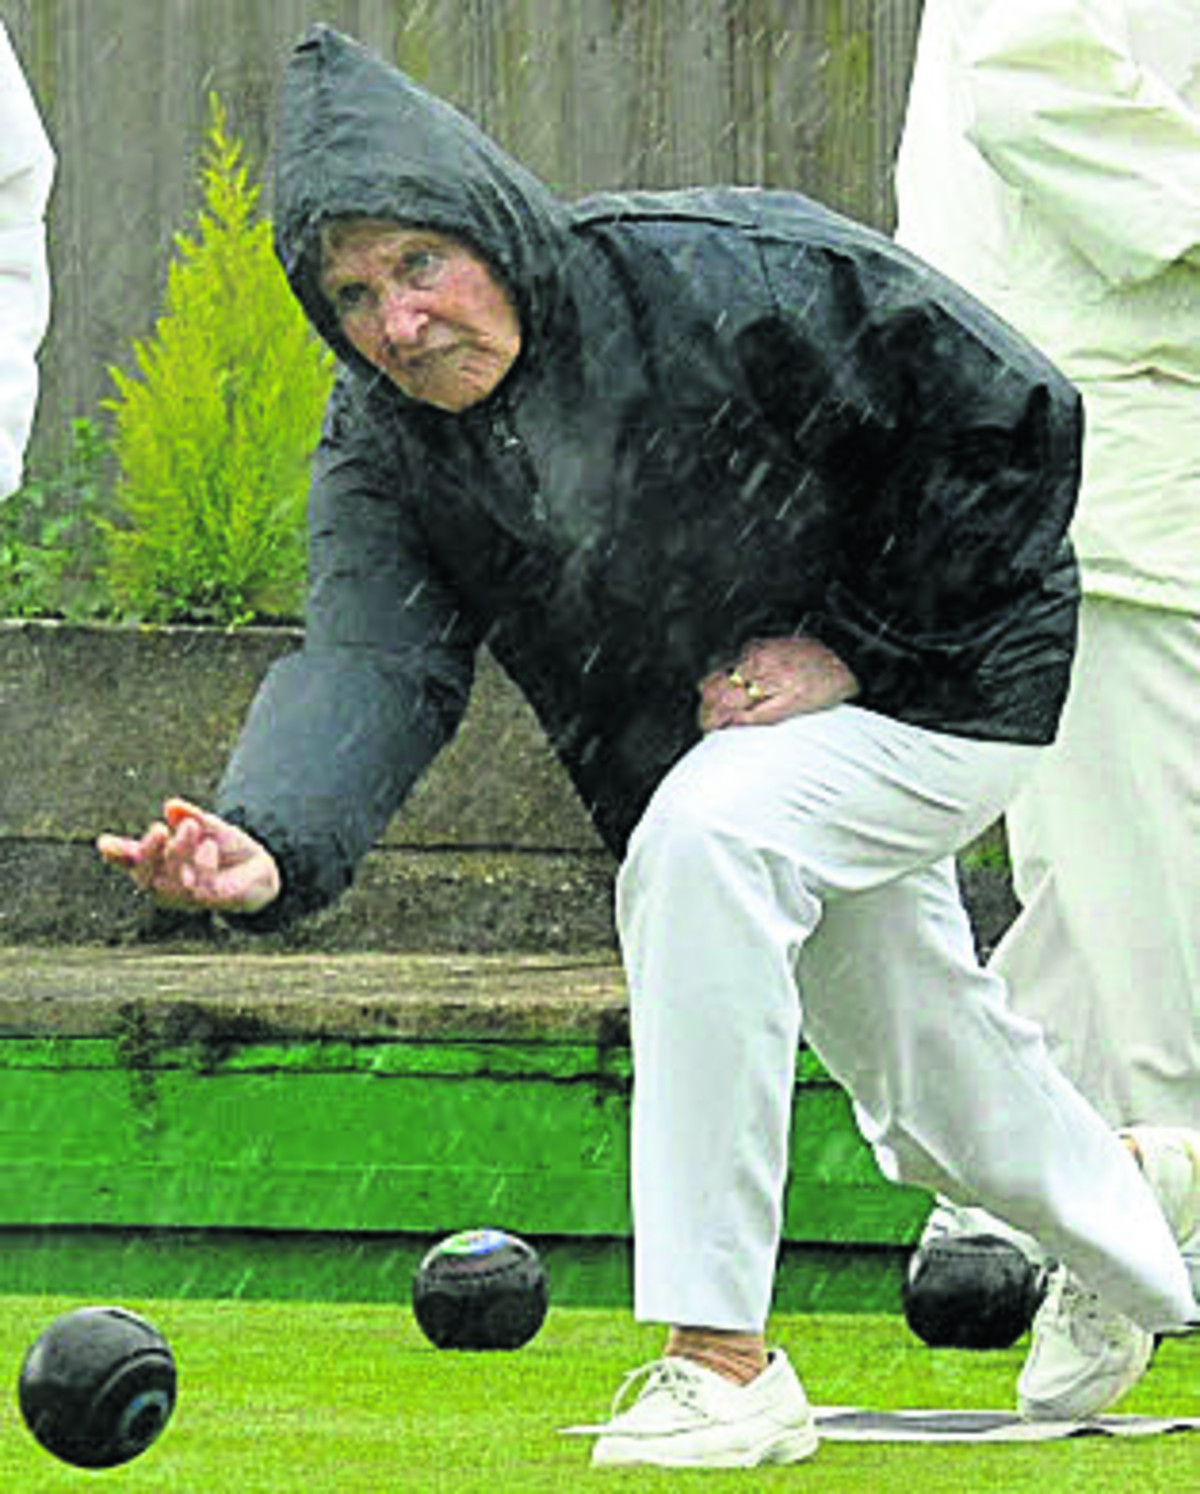 Devizes' Wendy Gaisford bowls for Wiltshire Ladies during Saturday's celebration match